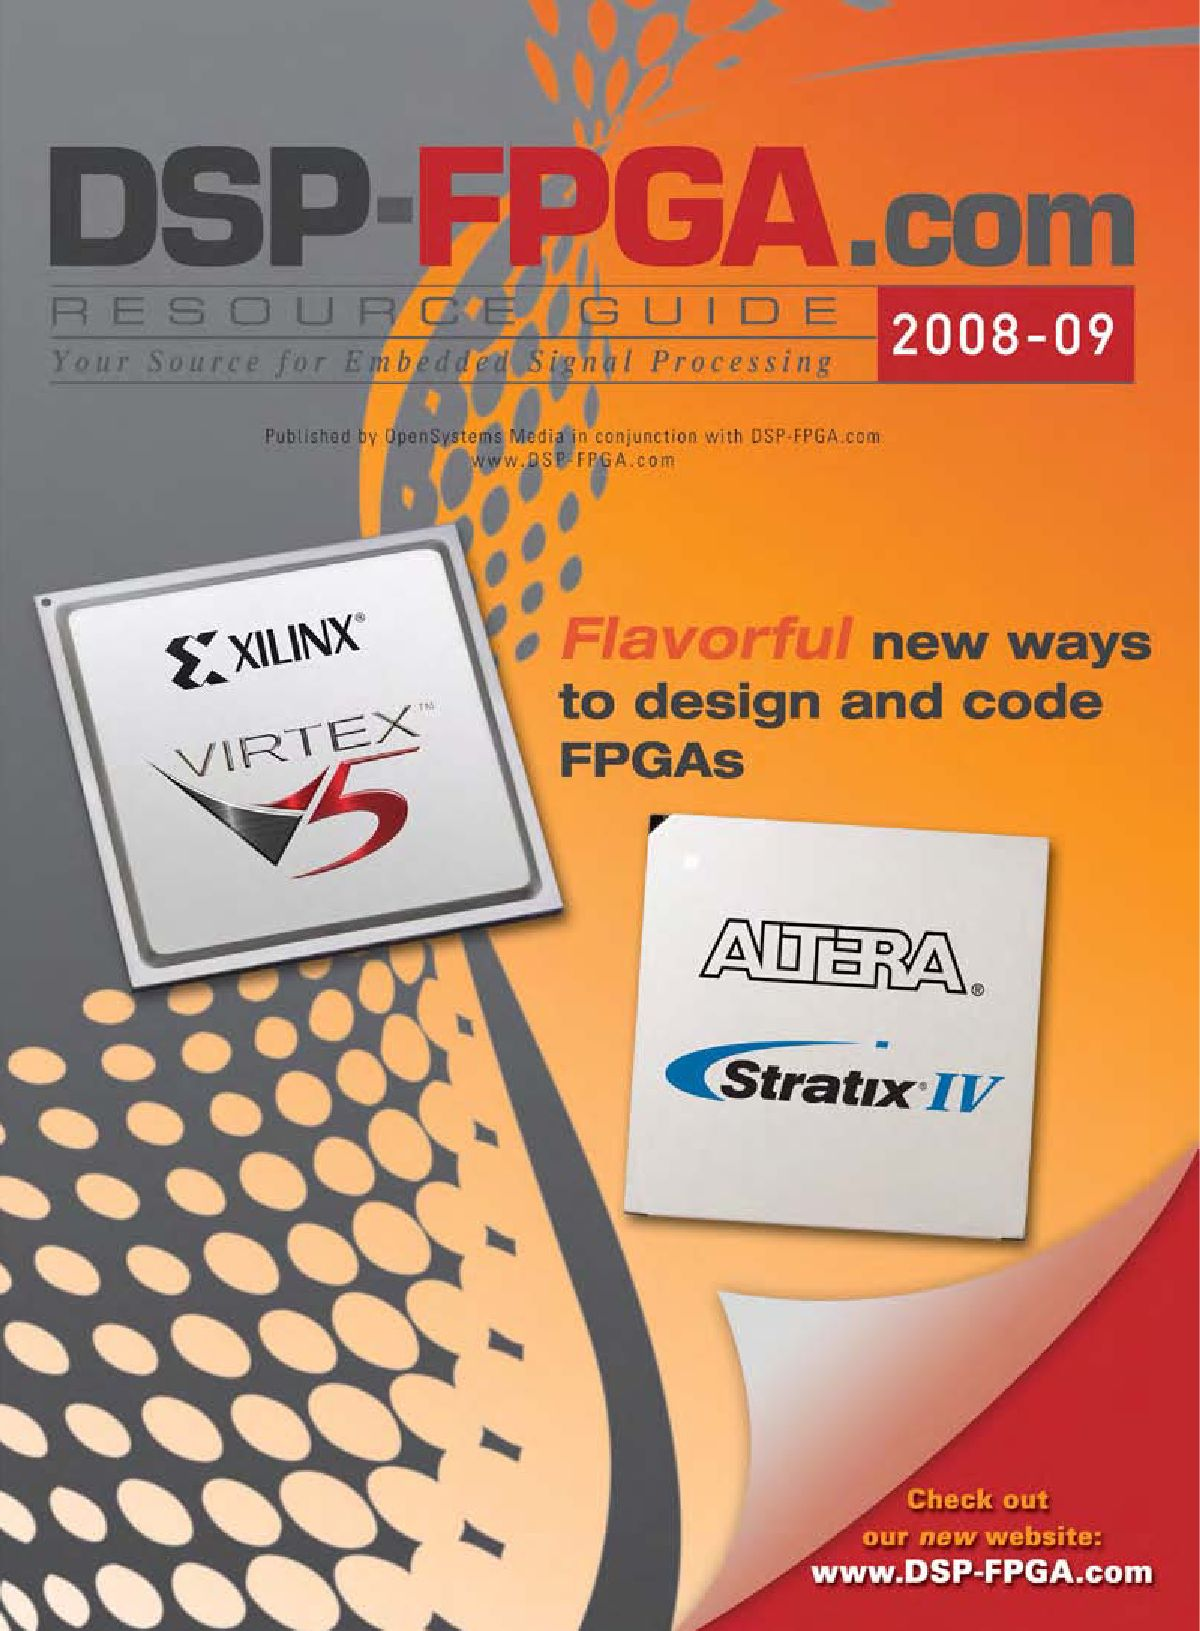 Dps Fpga 2008 2009 Resource Guide By Kwitte Issuu Online Circuit Simulator Analog Digital Mcu Vhdl And Rf Circuits